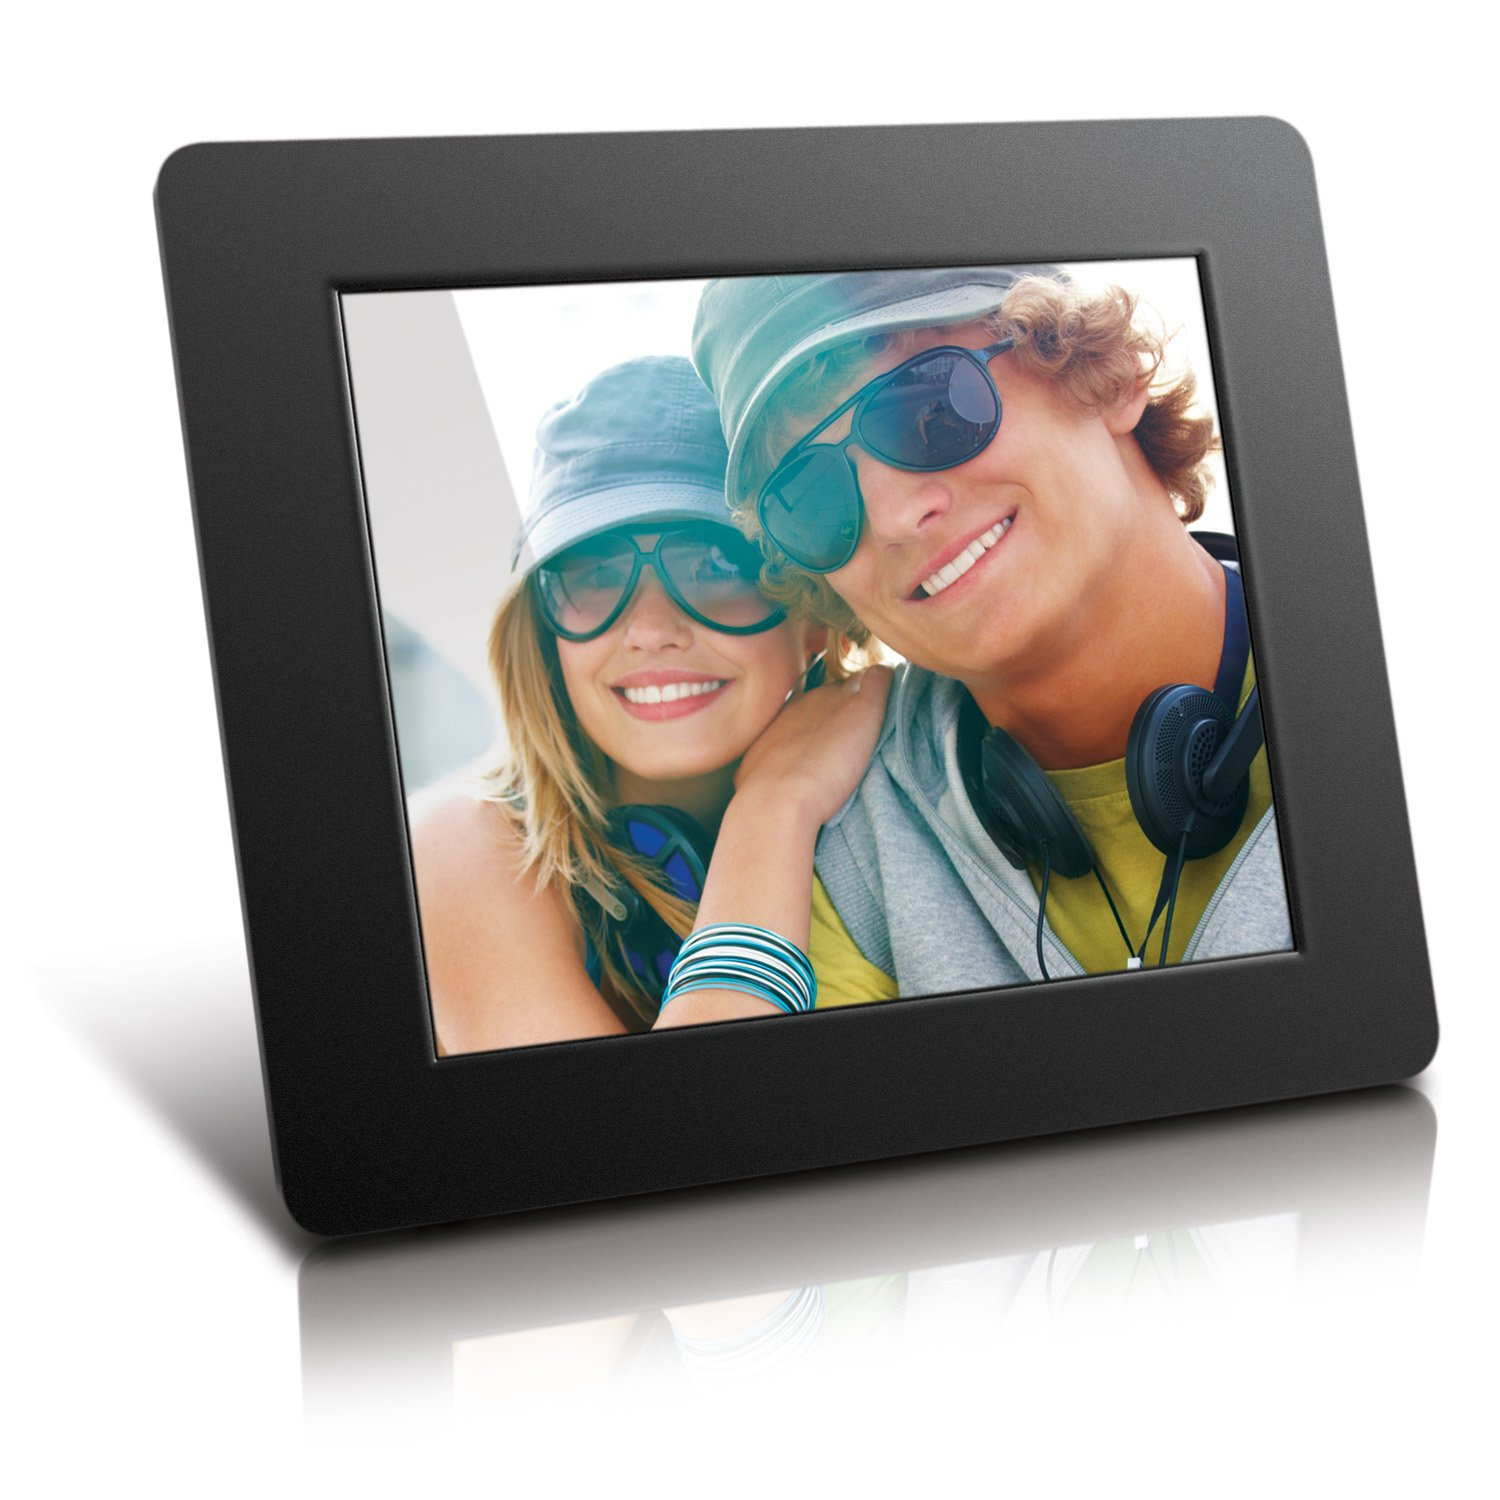 Amazon aluratek adpf08sf 8 inch digital photo frame amazon aluratek adpf08sf 8 inch digital photo frame black digital picture frames camera photo jeuxipadfo Gallery